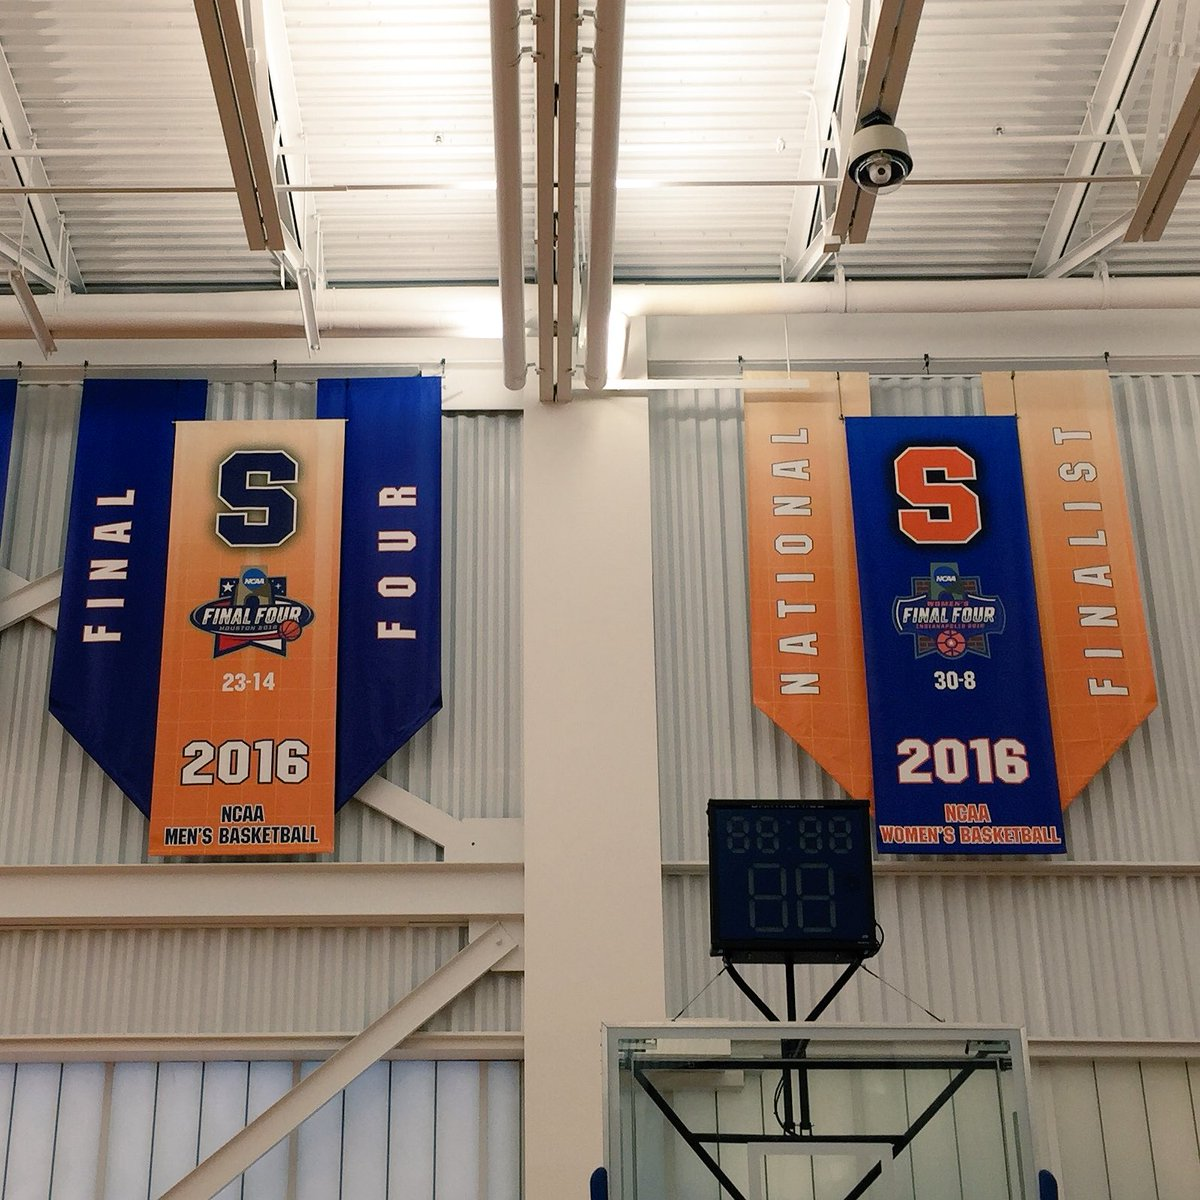 Syracuse Basketball On Twitter Two New Final Four Banners Added To